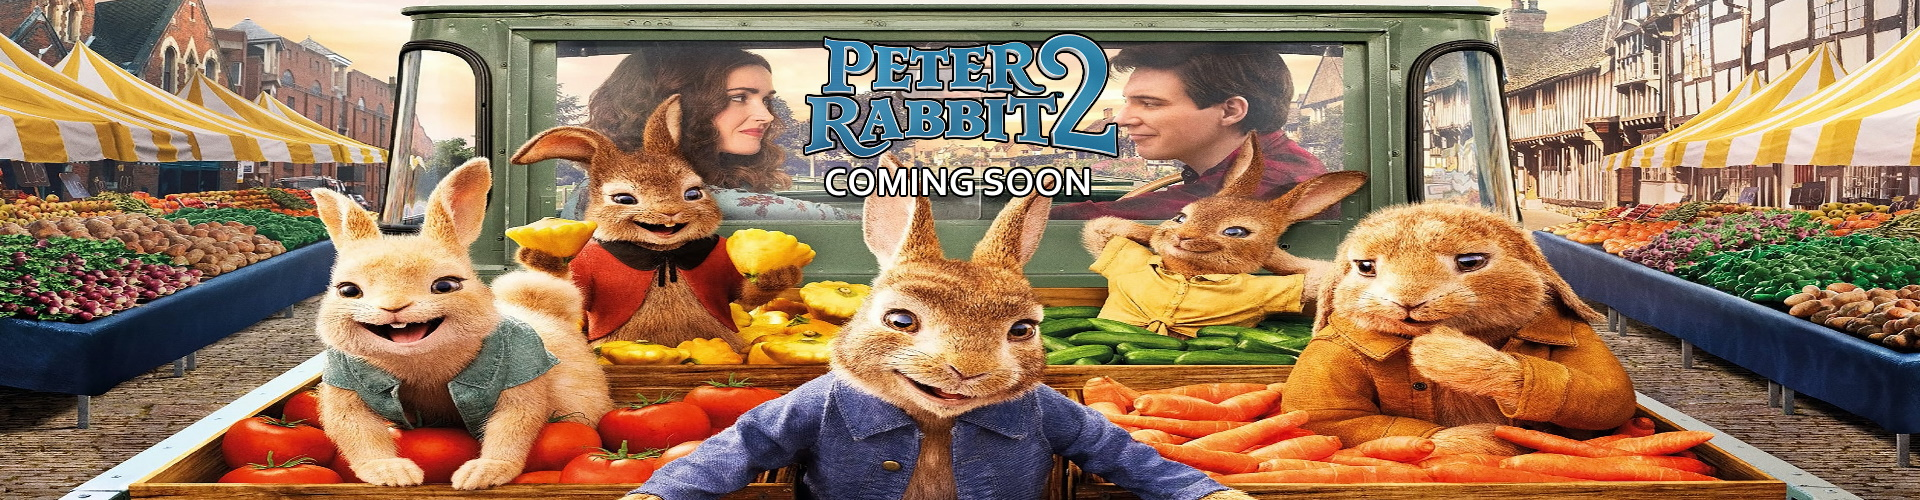 peterrabbit2comingsoon